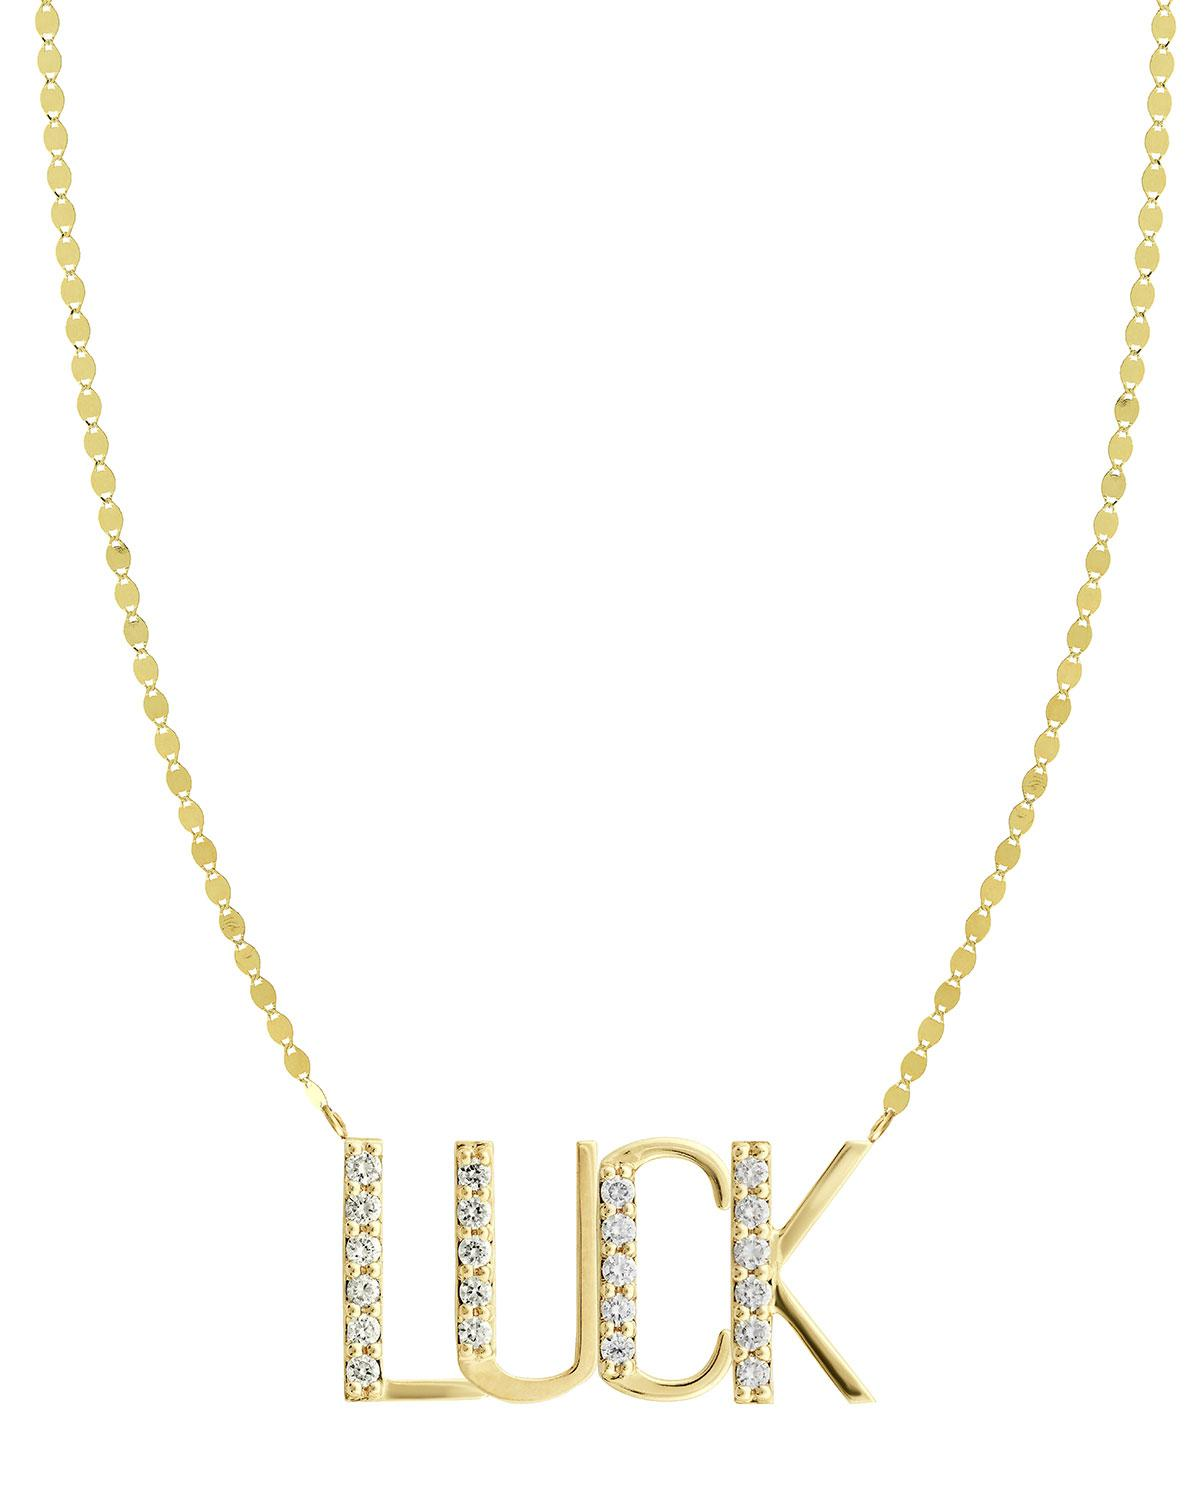 Lana Jewelry 14k Tricolor Gold Triple-Strand Necklace 9hNju